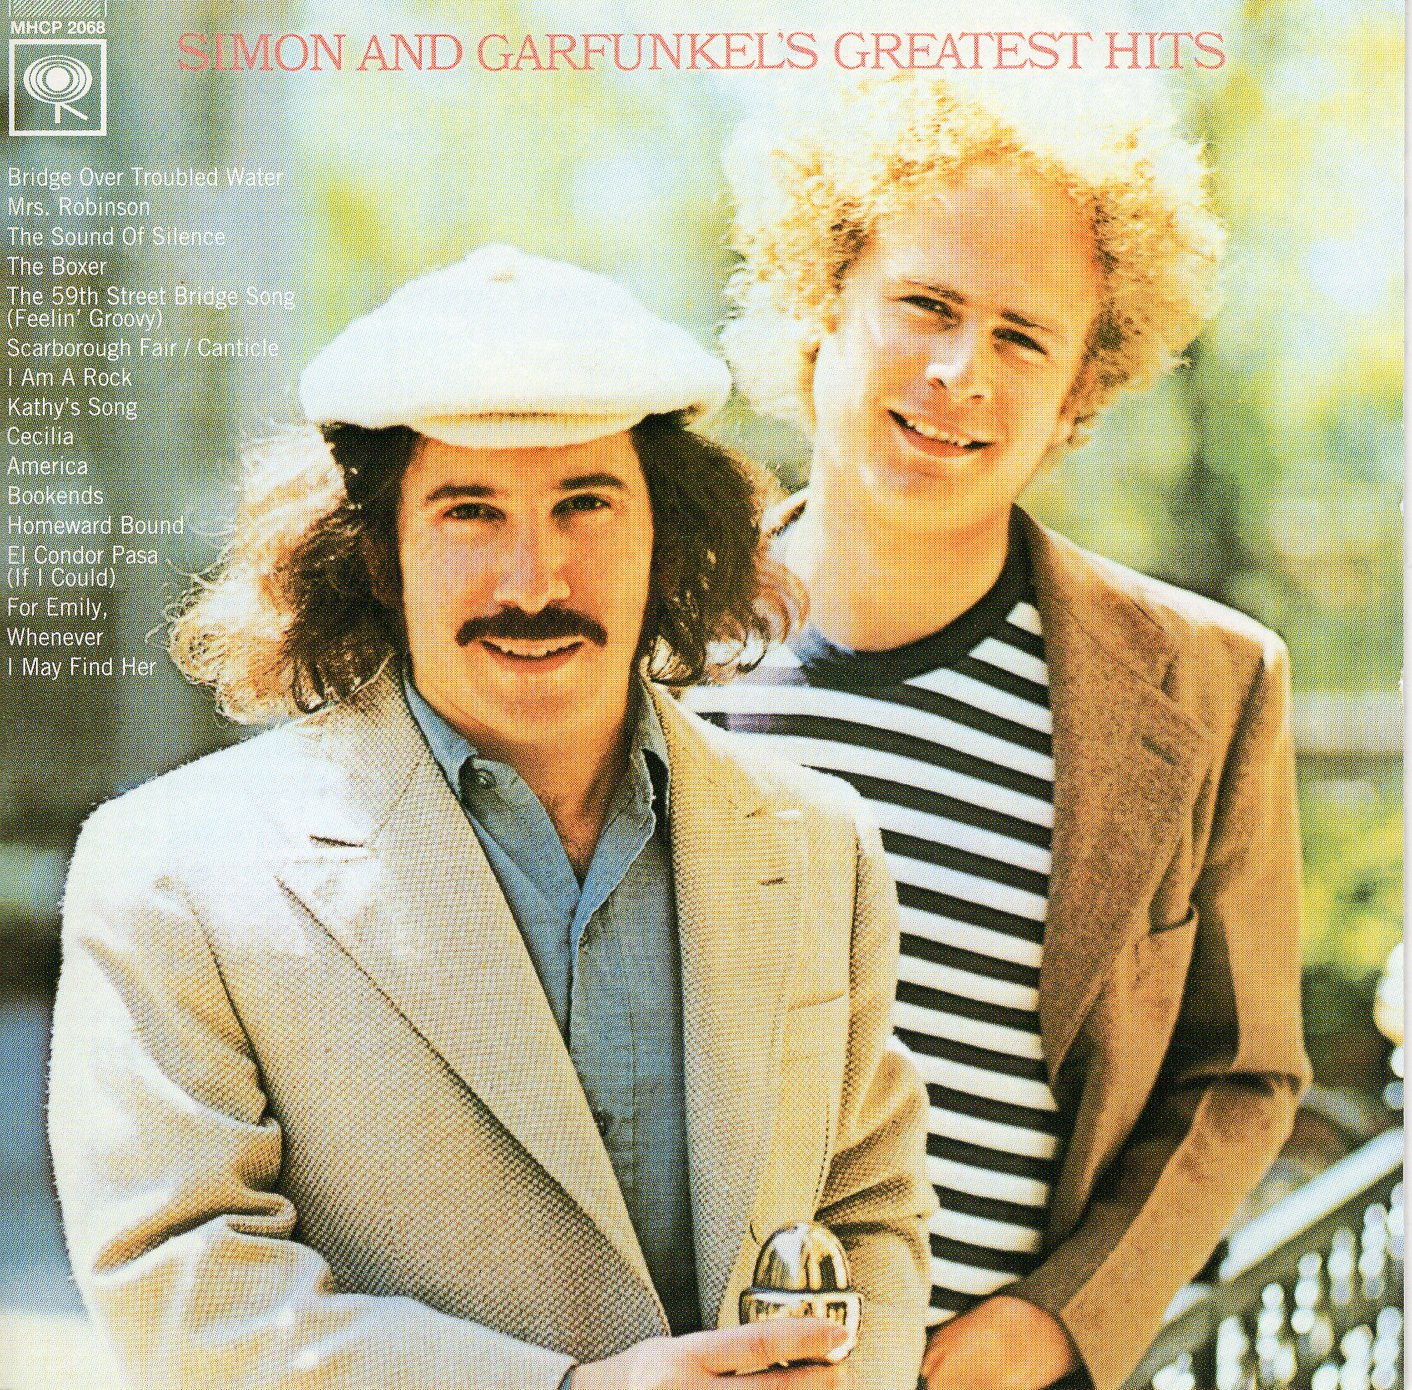 """Simon and Garfunkel's Greatest Hits"" Simon and Garfunkel"